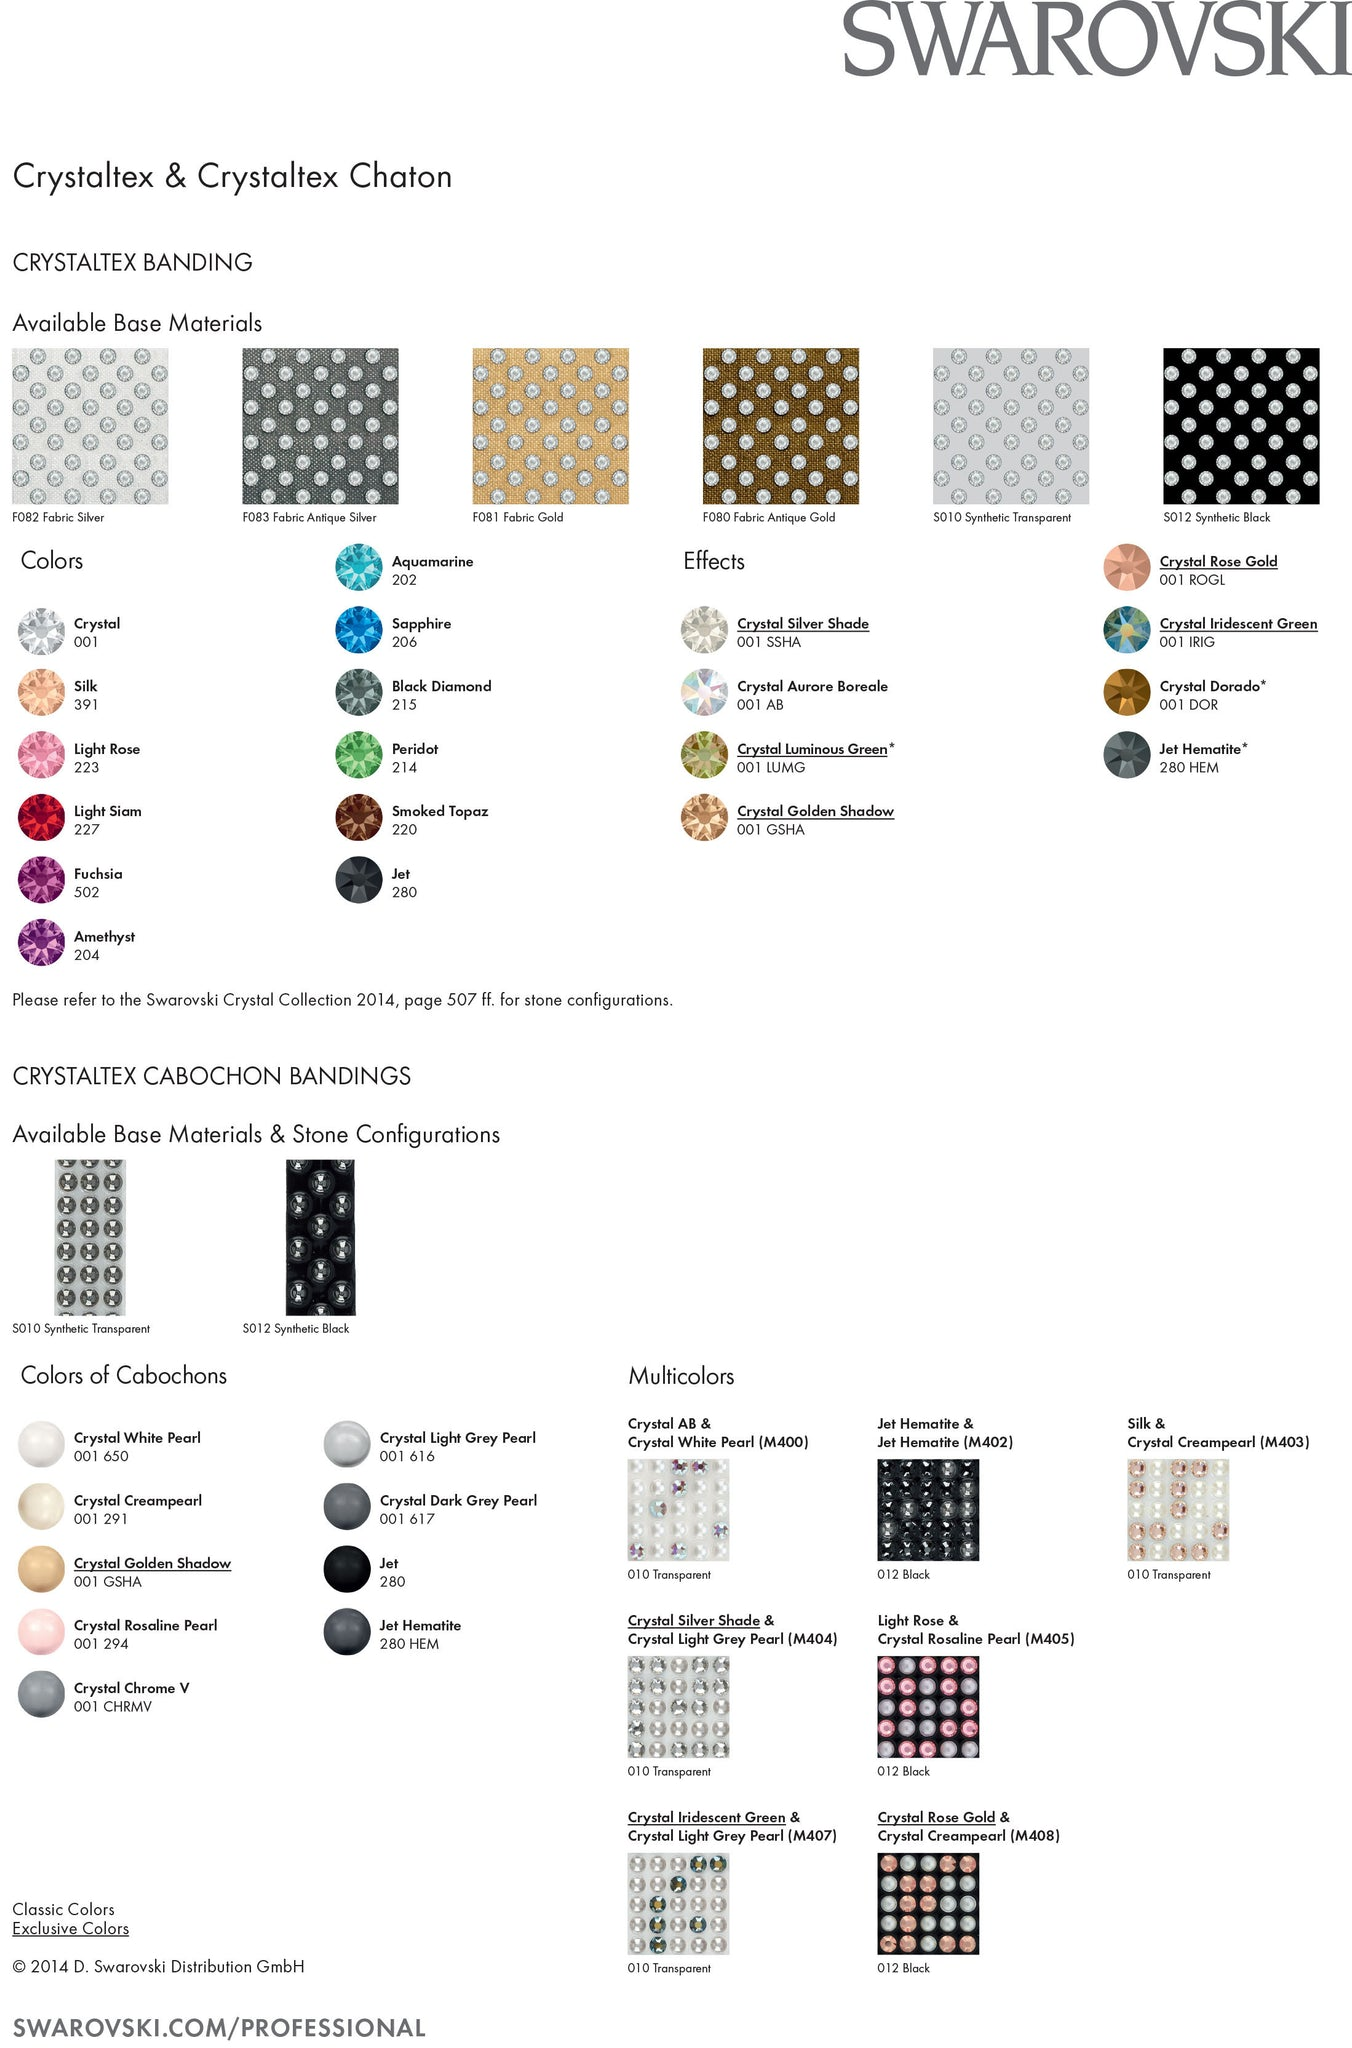 Swarovski Crystaltex Colour Chart 2016